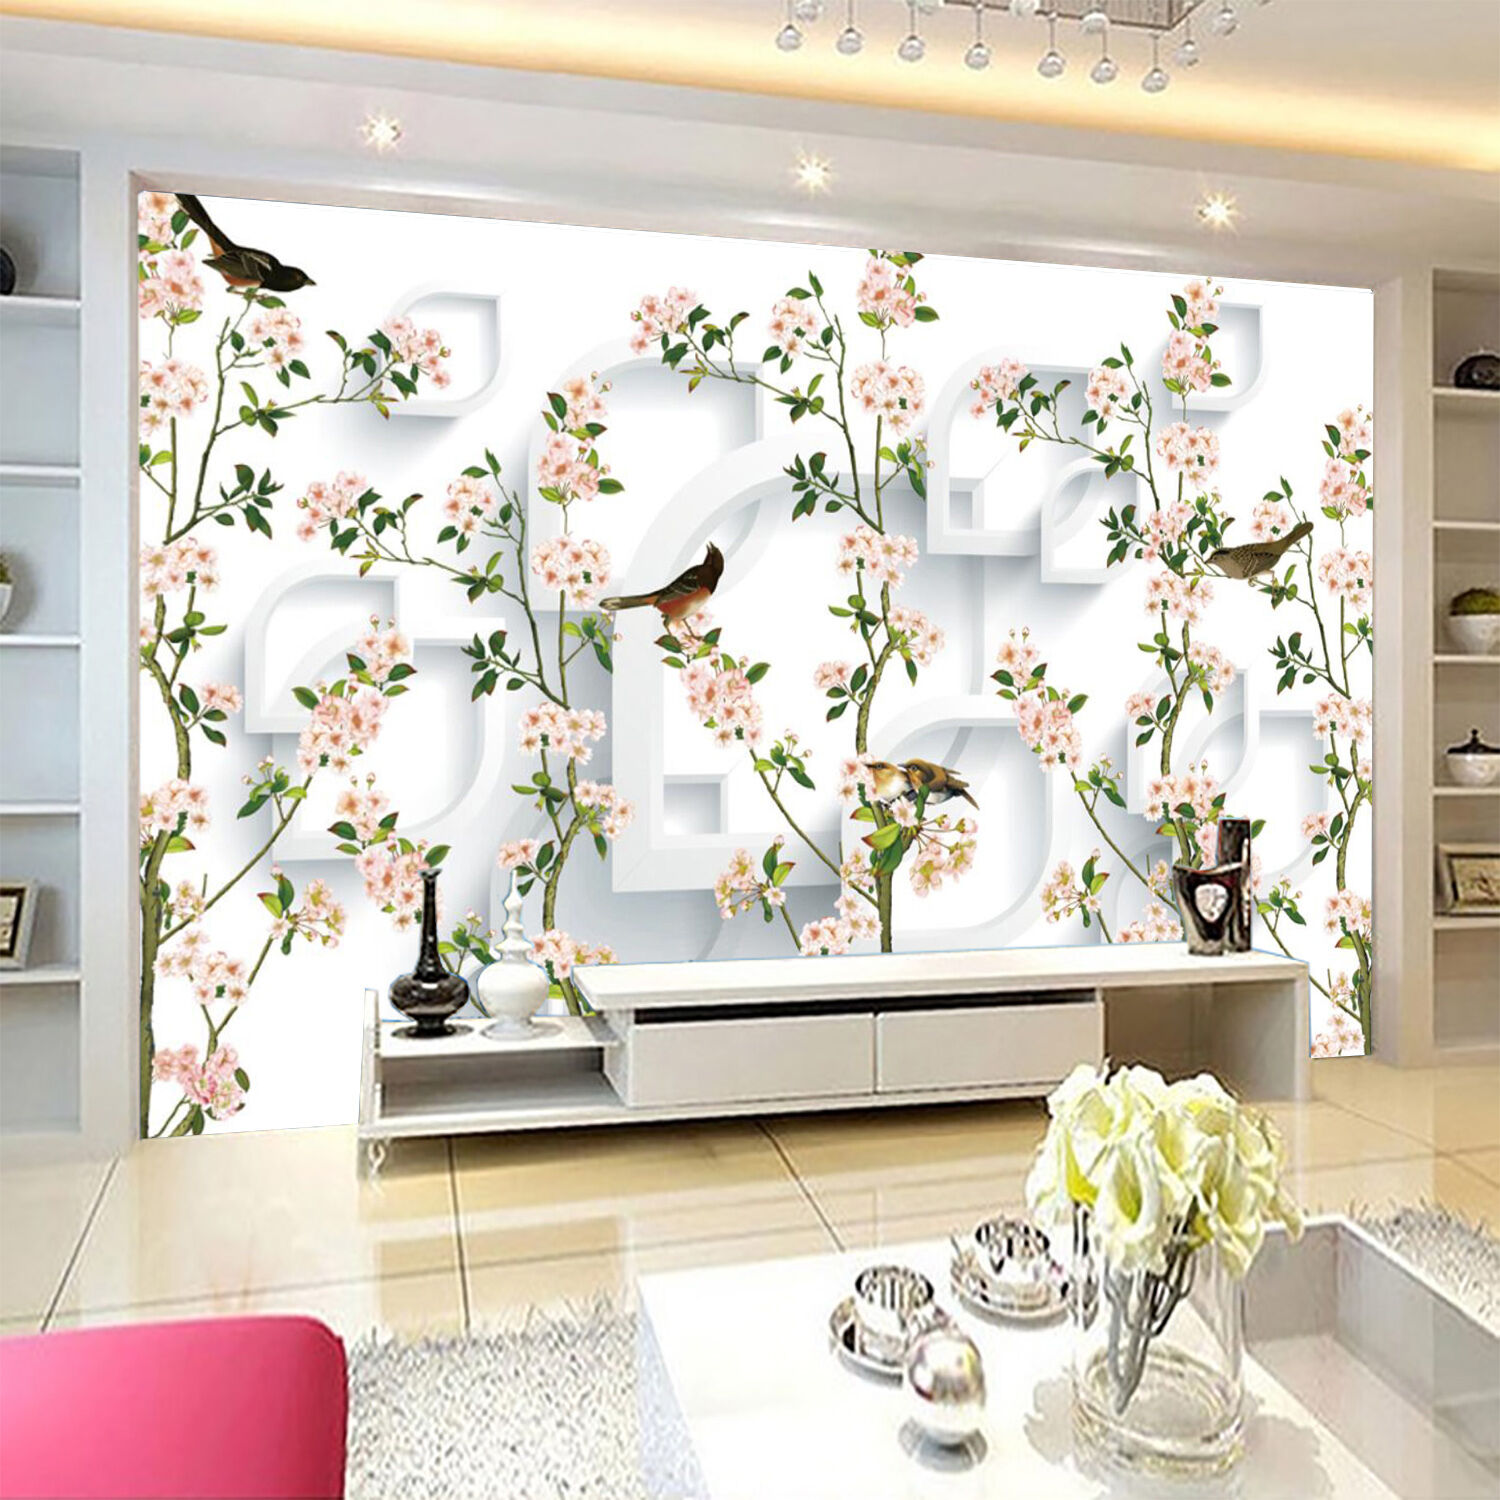 3D Peach Flower Tree 104 Wall Ppaper Decal Dercor Home Kids Nursery Mural  Home